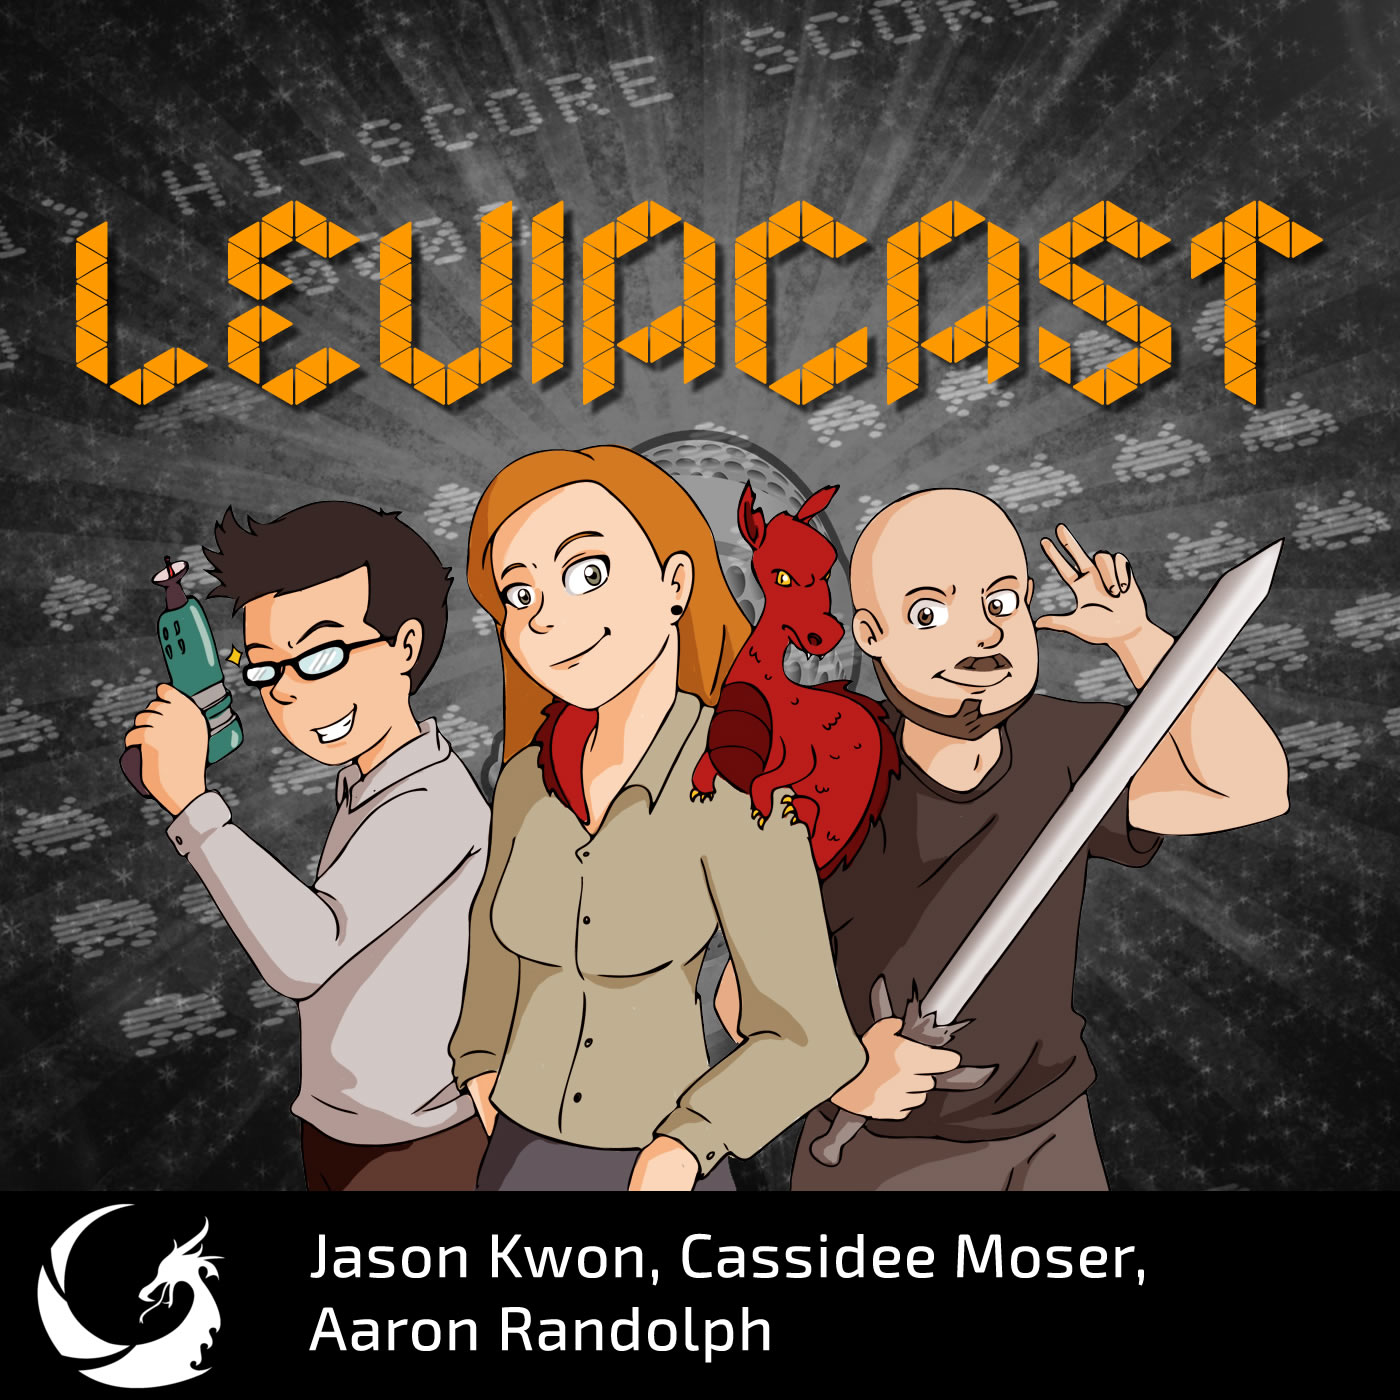 Leviacast Ep. 107: Fallout, Comics, and Crazy Horror Games